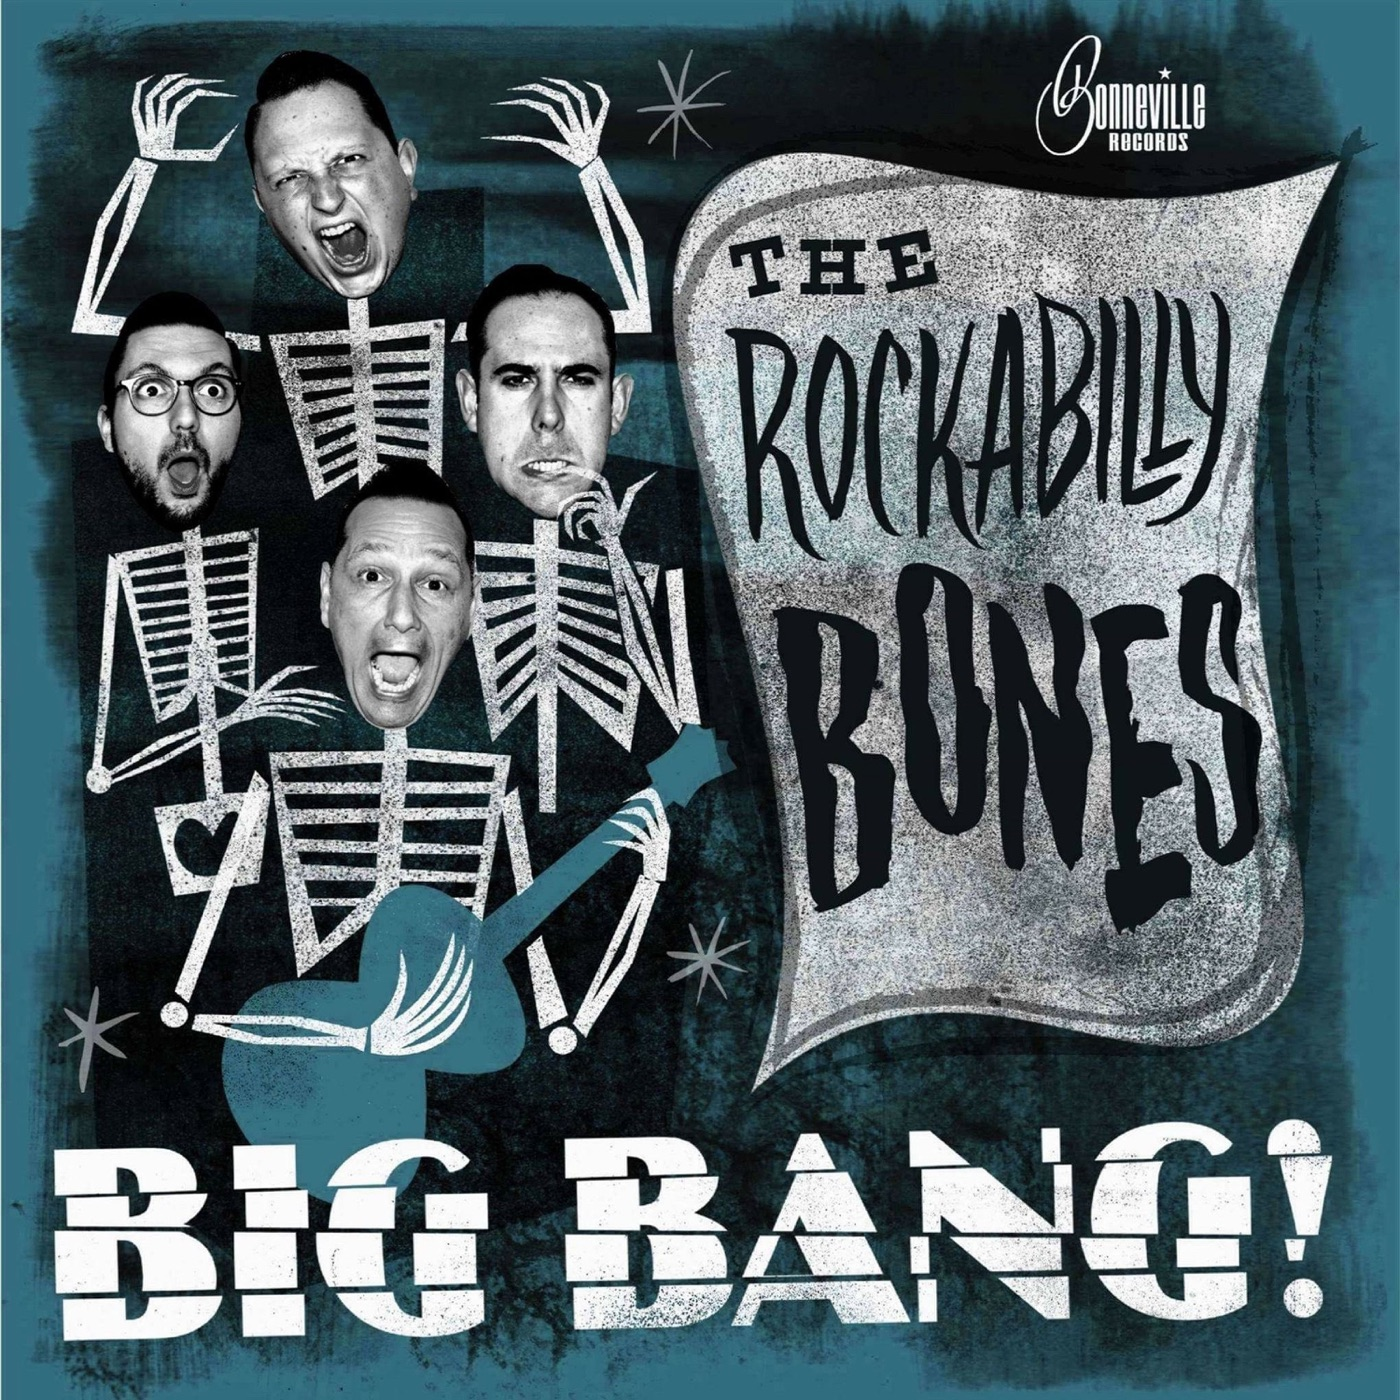 The Rockabilly Bones - Big Bang! (2019)